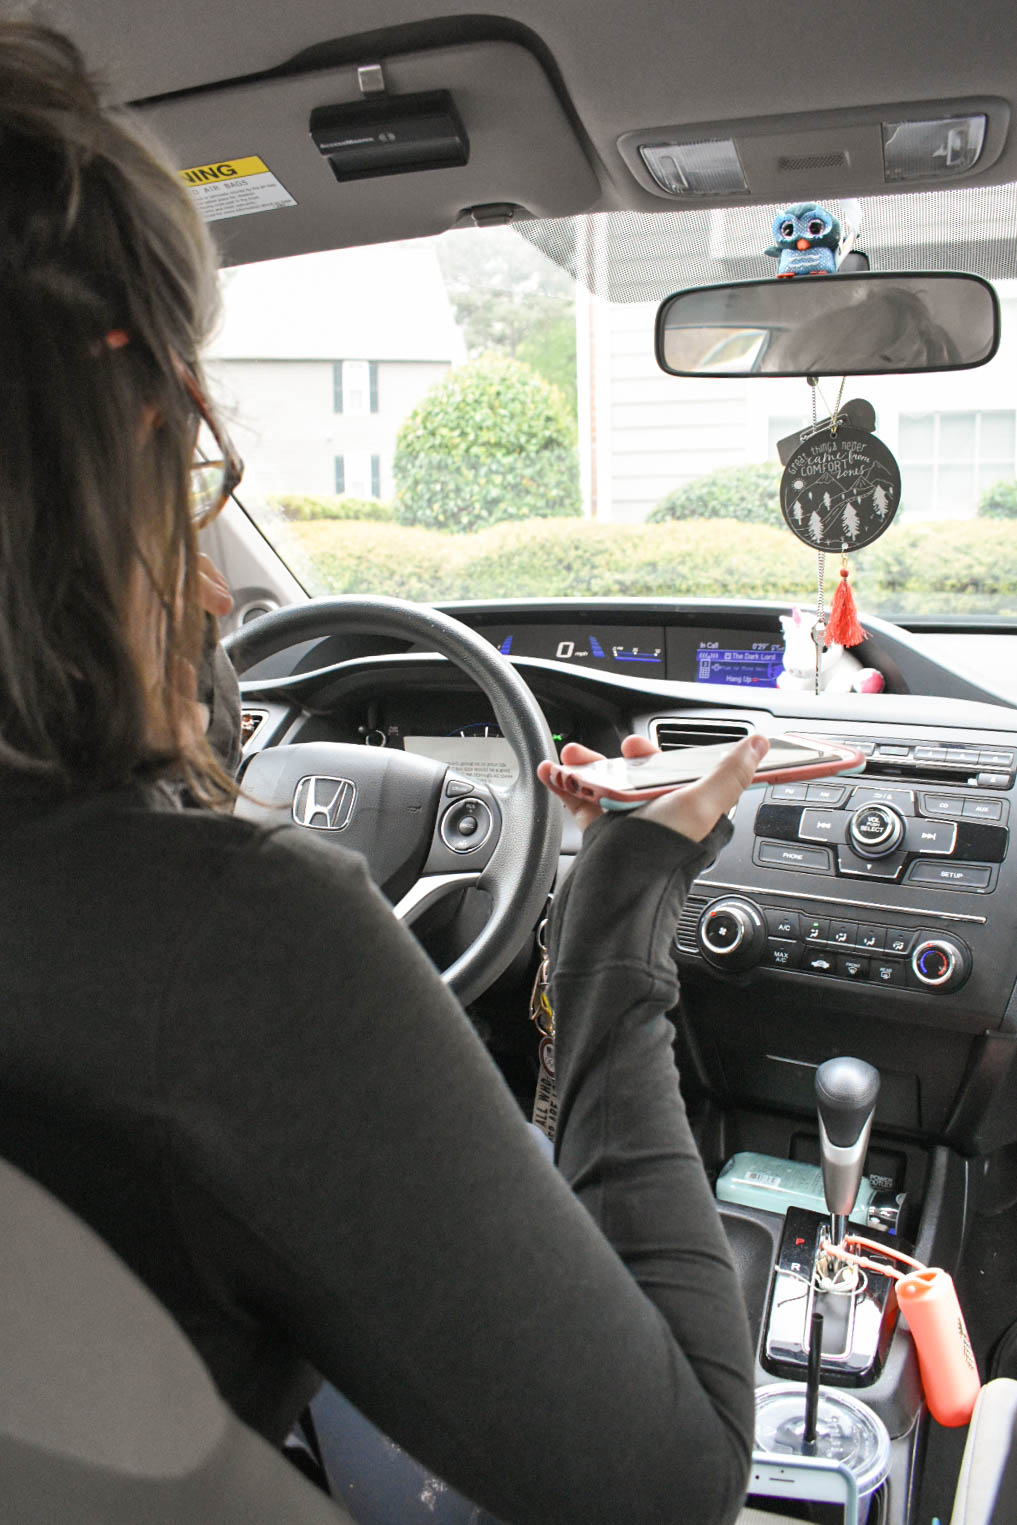 NSC brings awareness to distracted driving